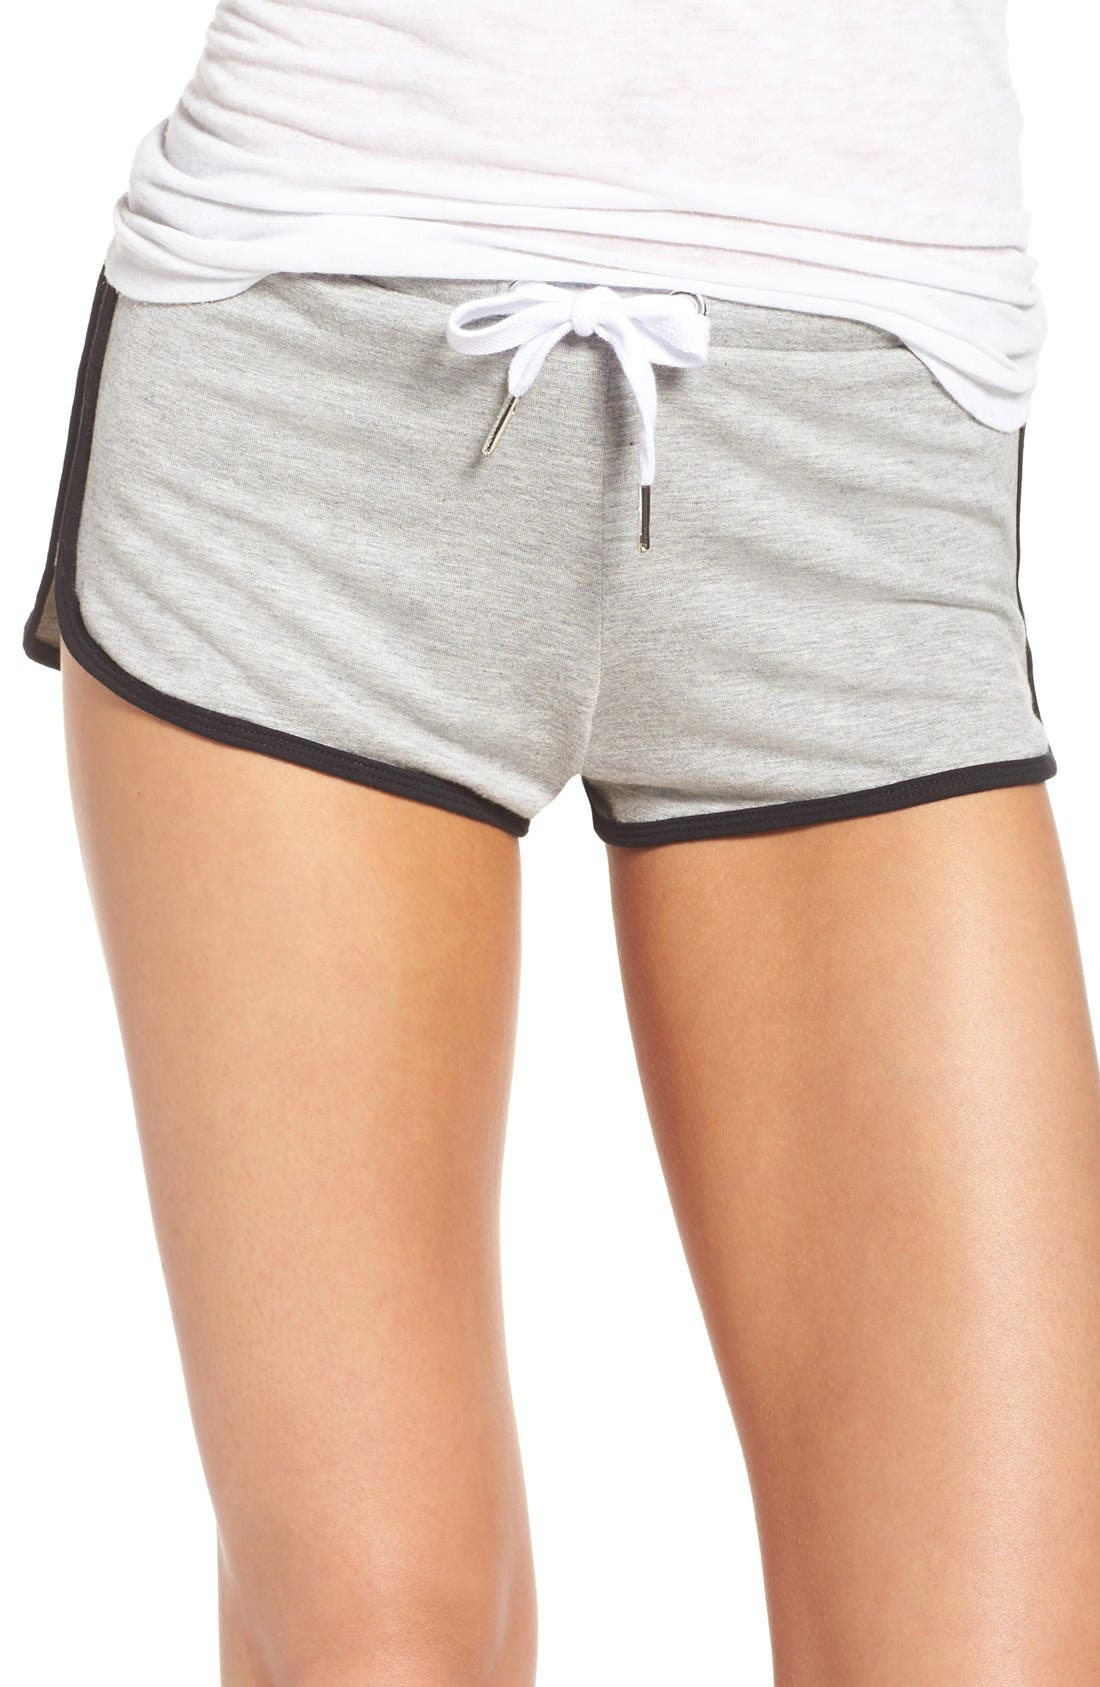 The Laundry Room Lounge Shorts